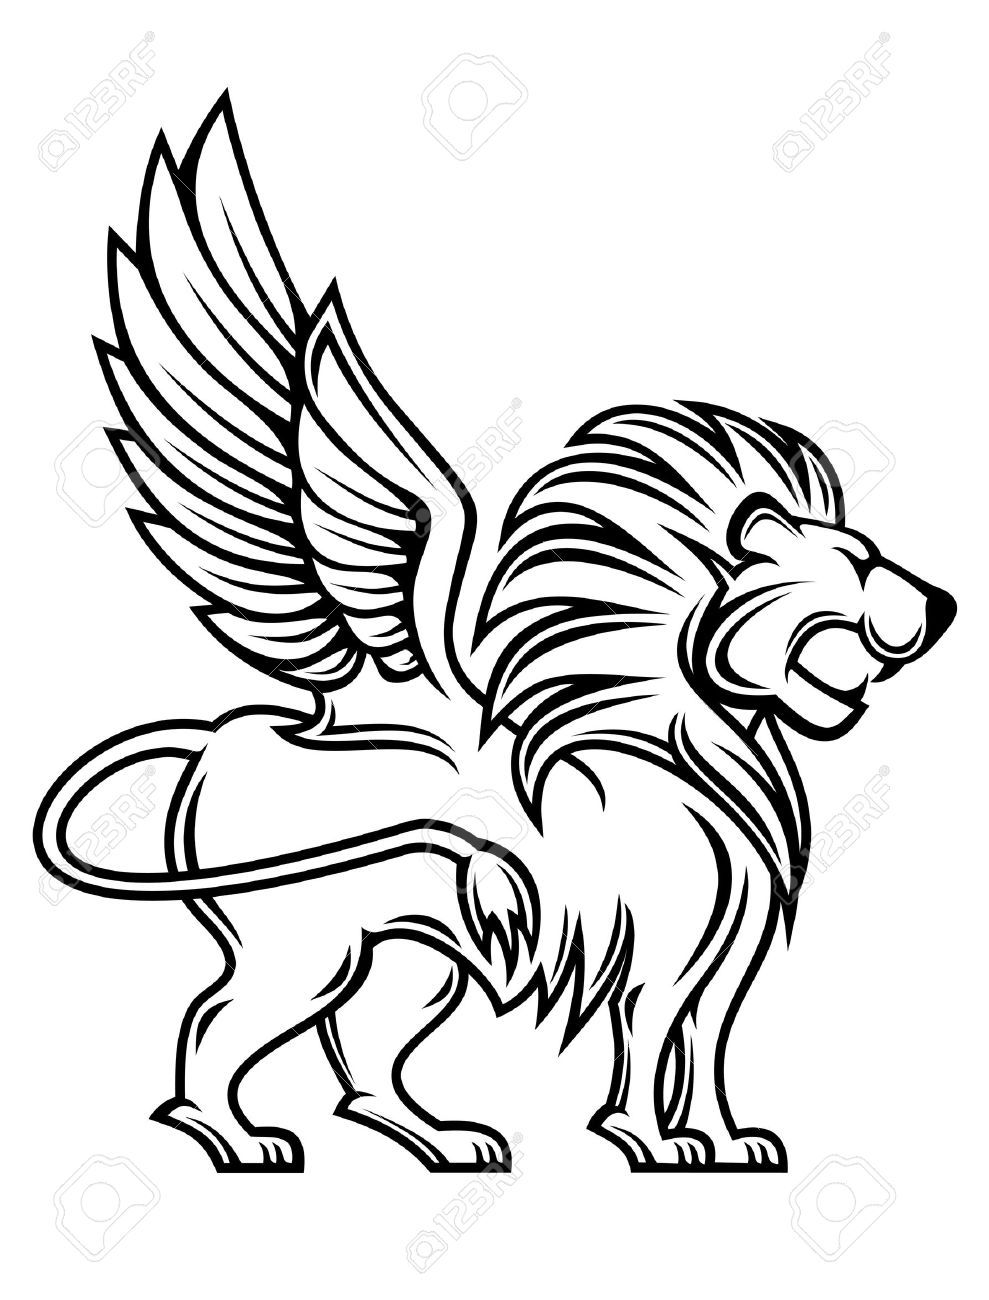 Clipart lion flying. Winged kids art th